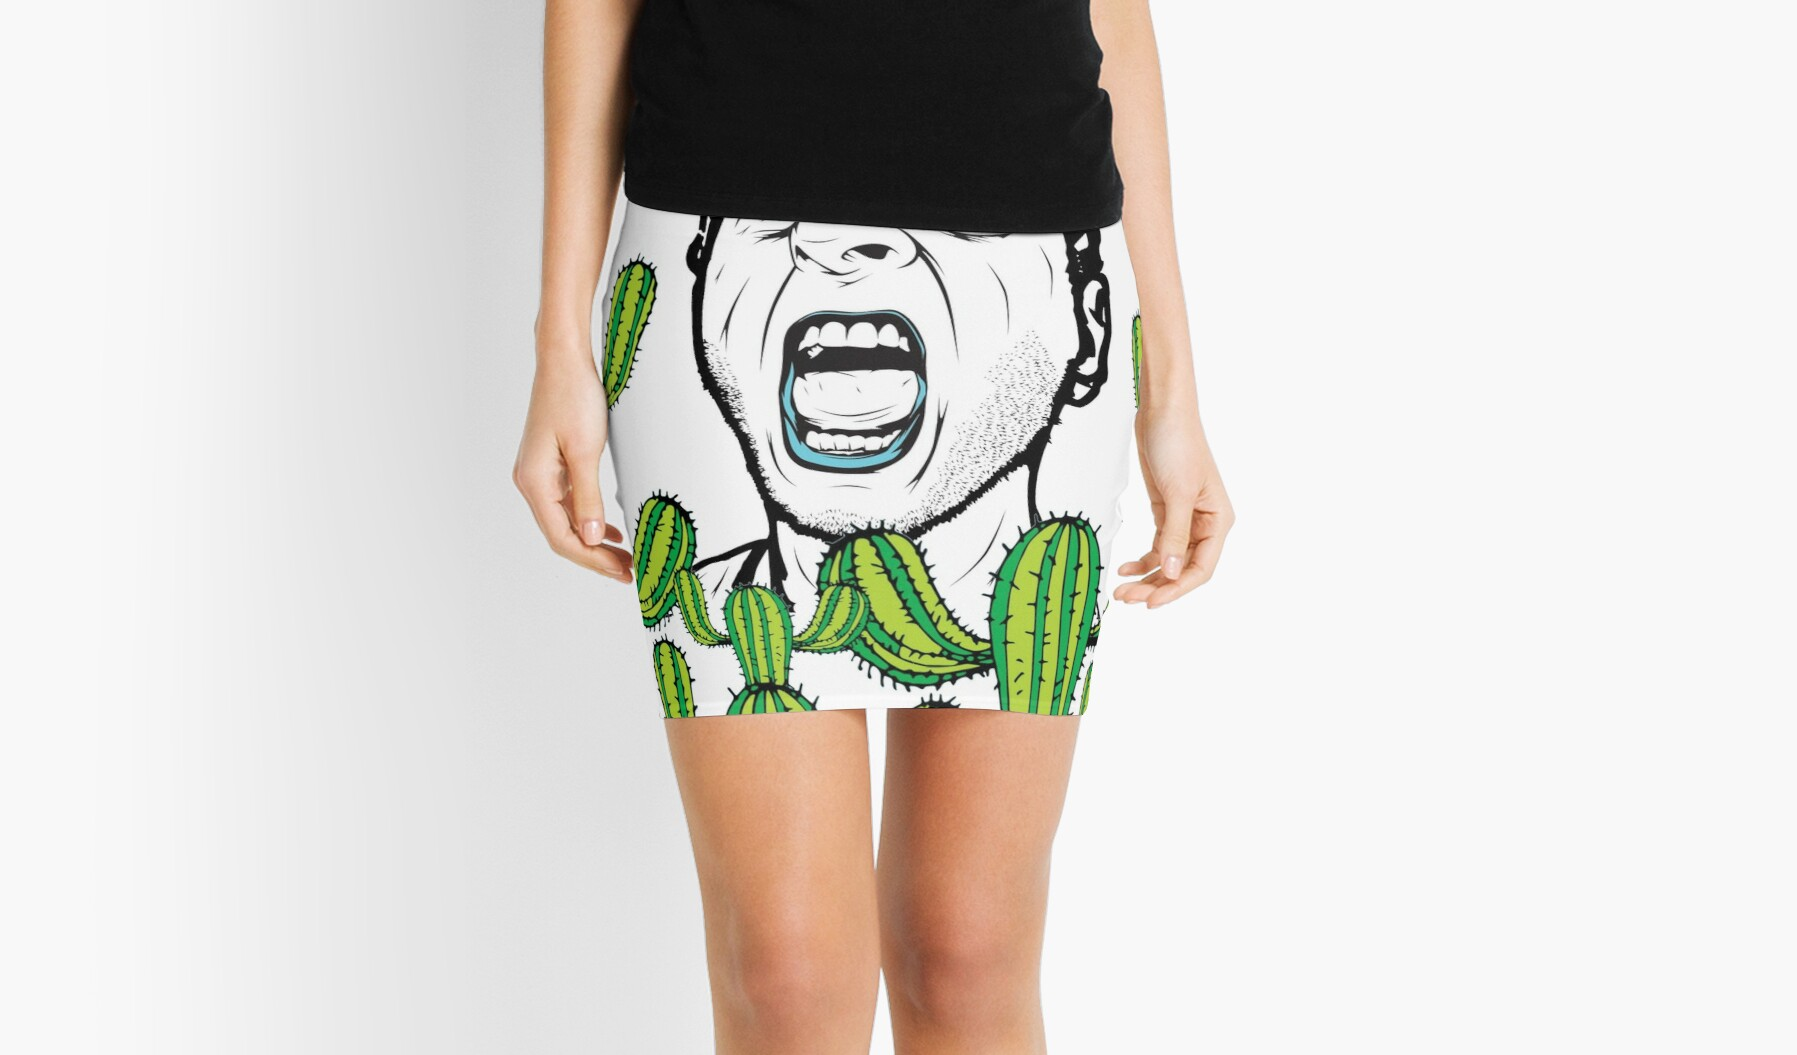 Mikes Lipstick Mini Skirts By Wevegotaband Redbubble